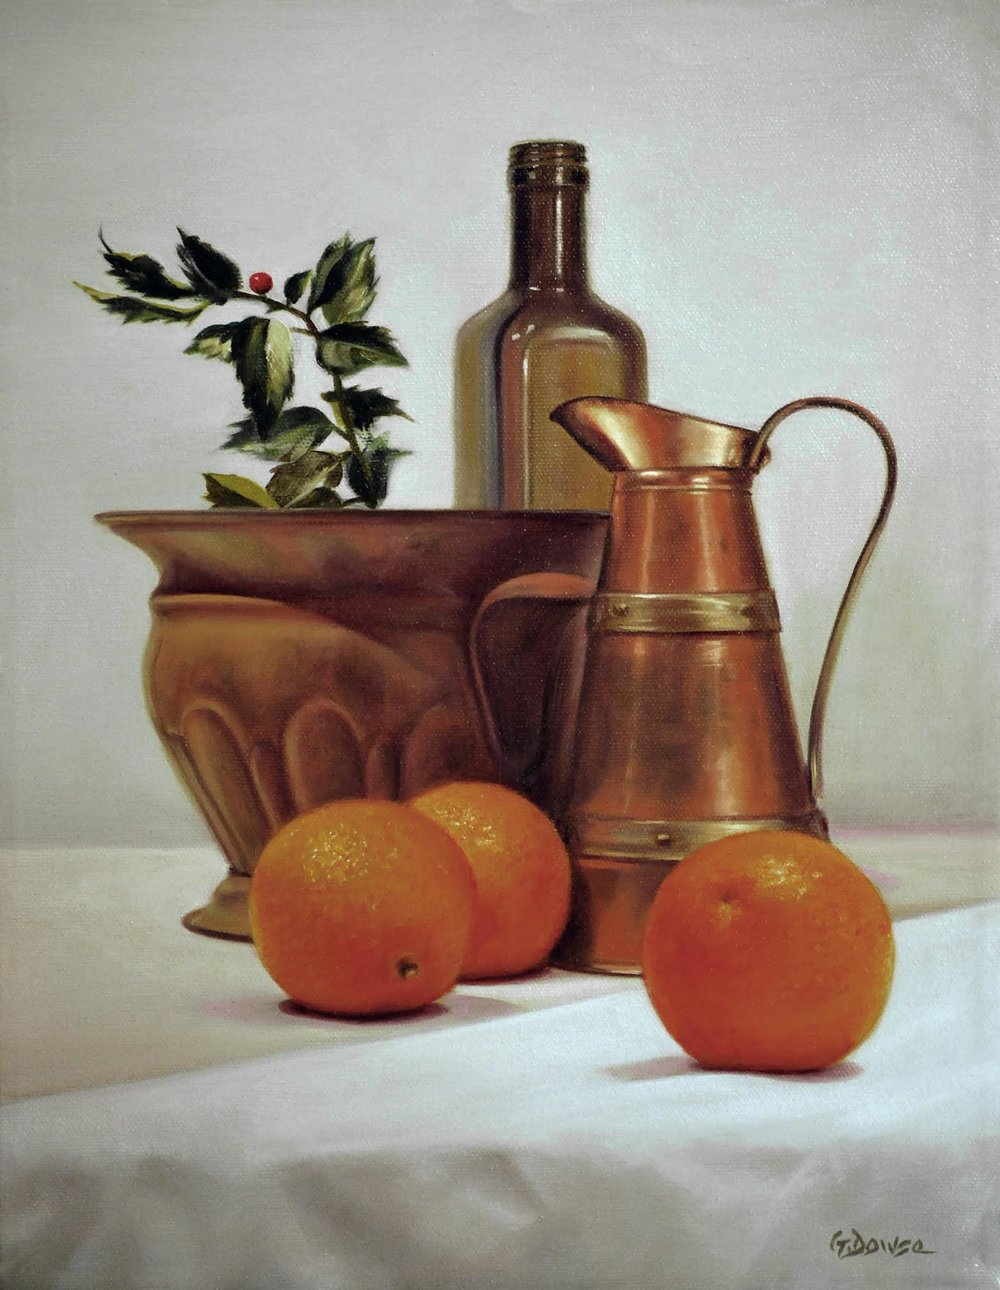 96 - Copper and Orange, 14 x 11, Oil